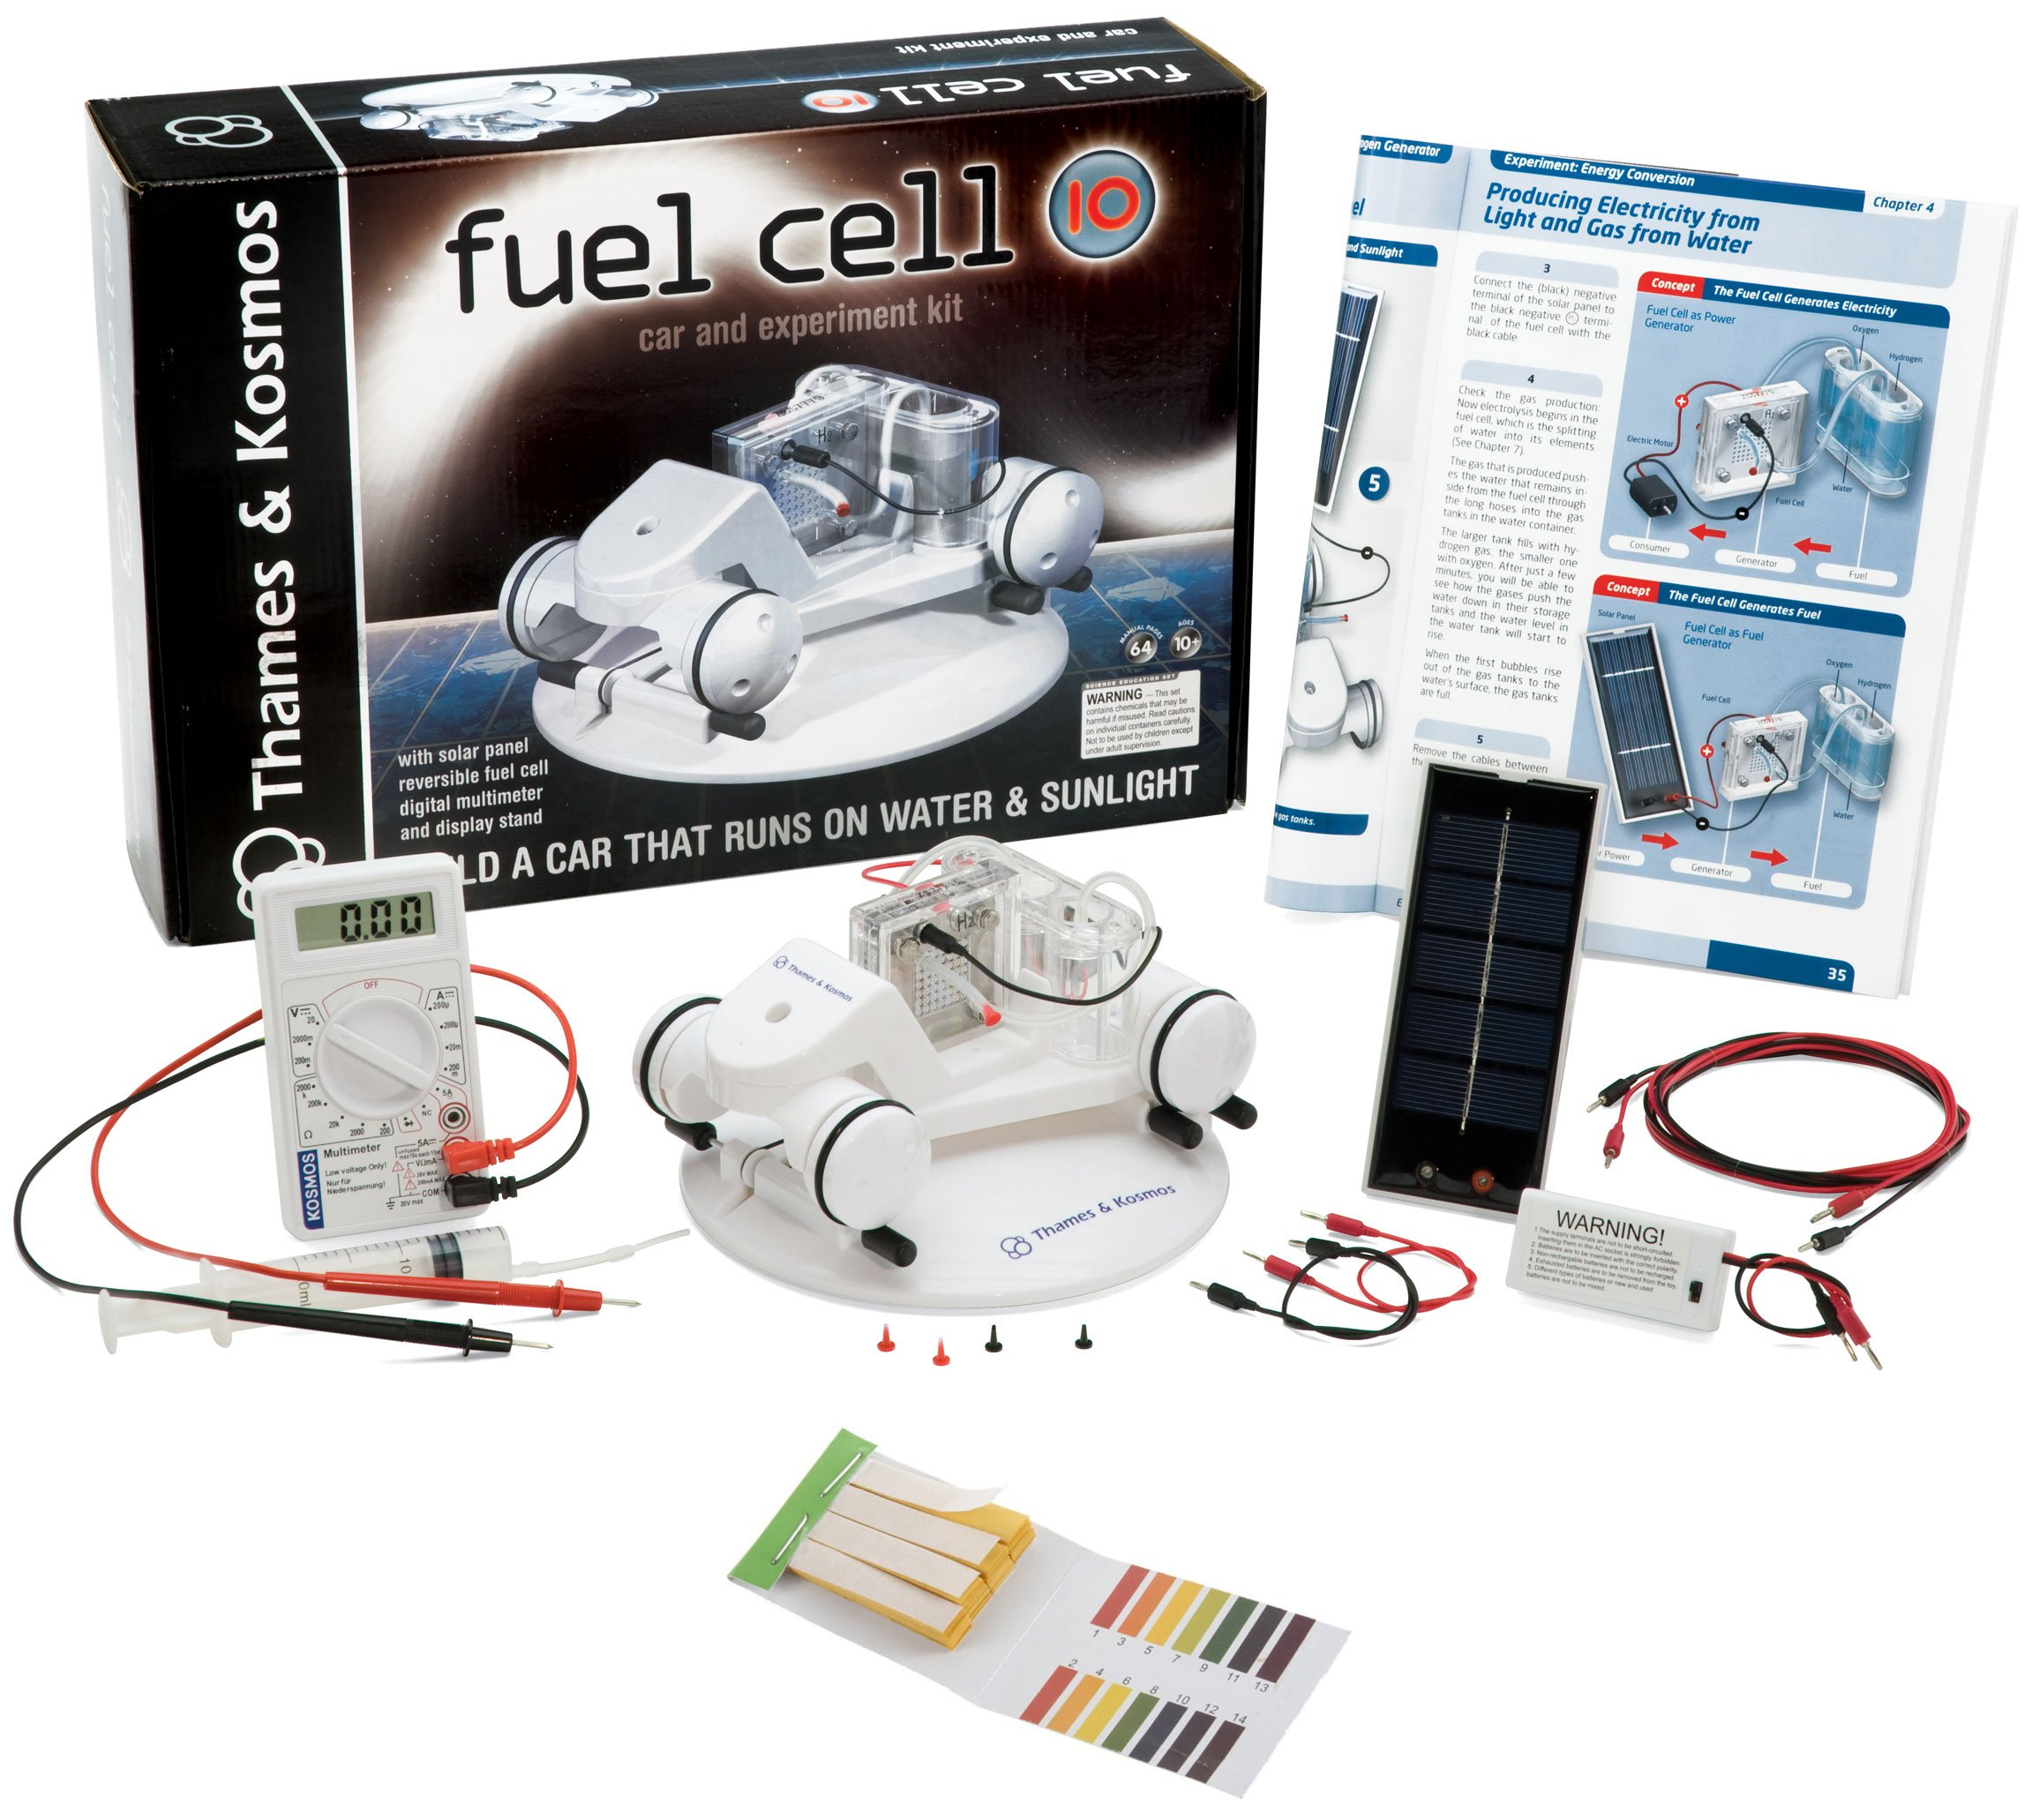 Thames & Kosmos 620318 Fuel Cell 10 Science Kit with 50-Pack Litmus Paper PH Strips